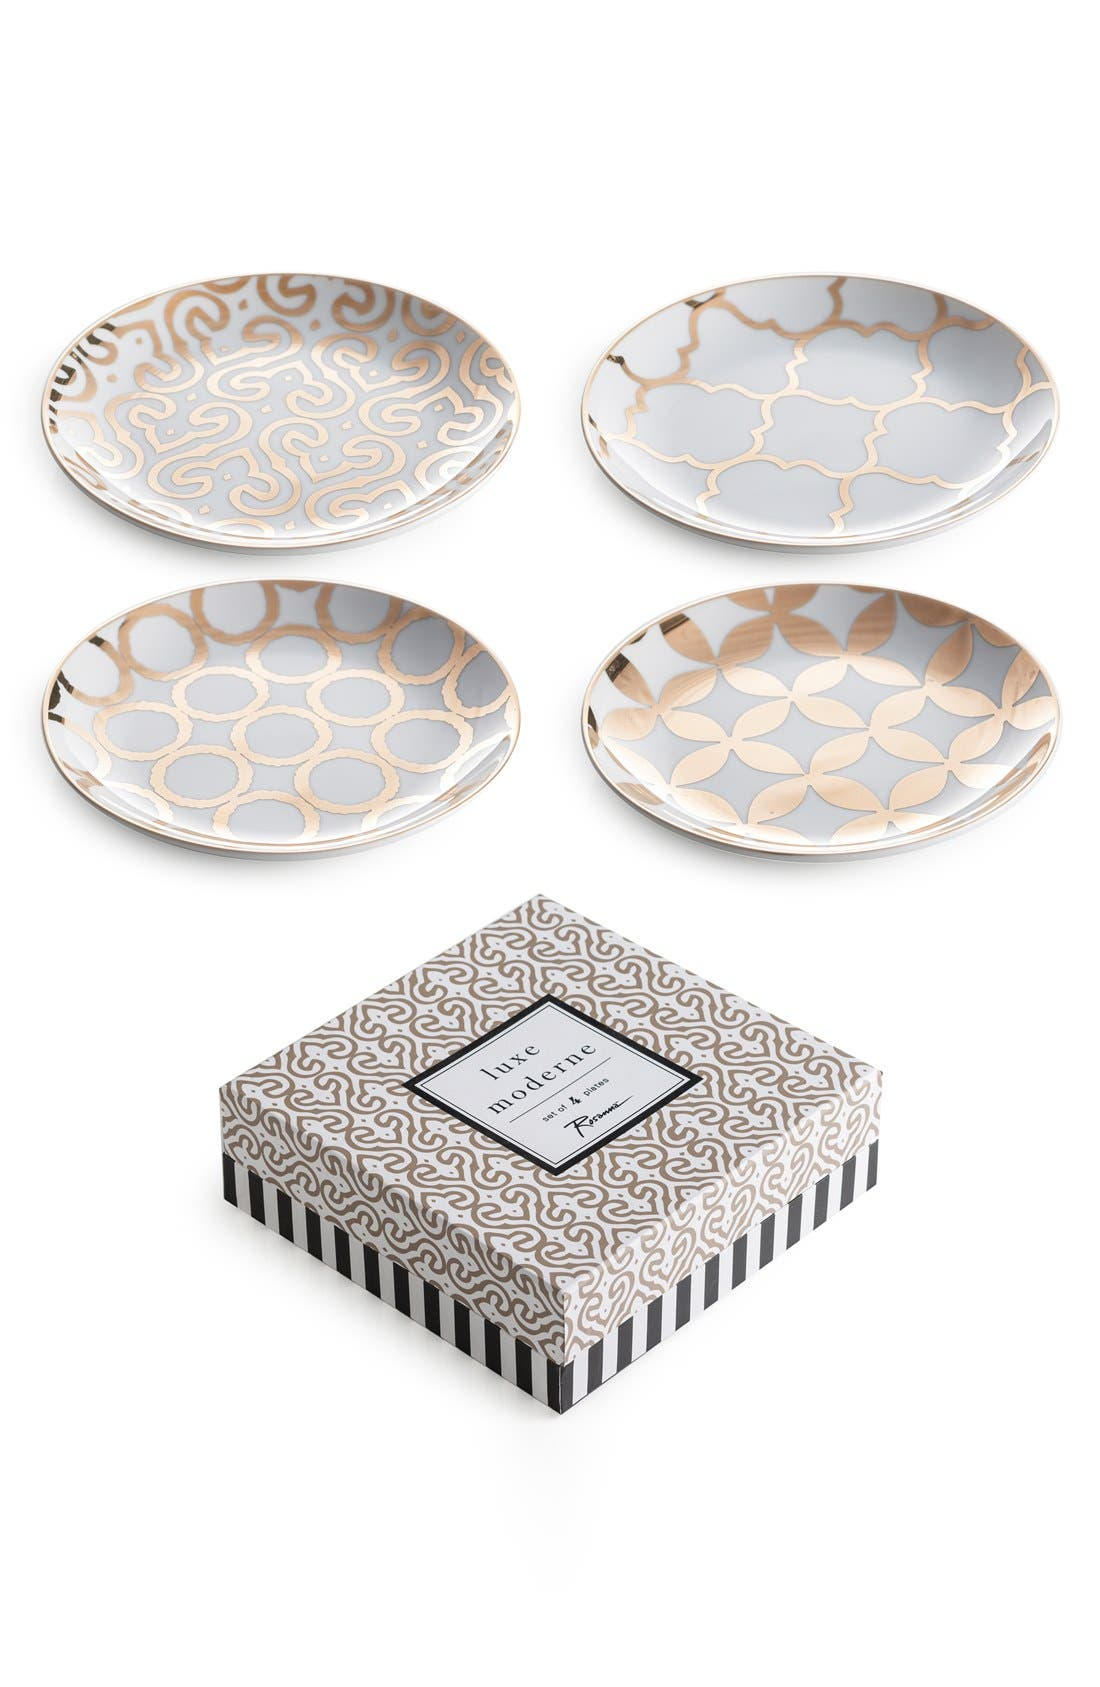 Rosanna 'Luxe Moderne' Appetizer Plates (Set of 4)